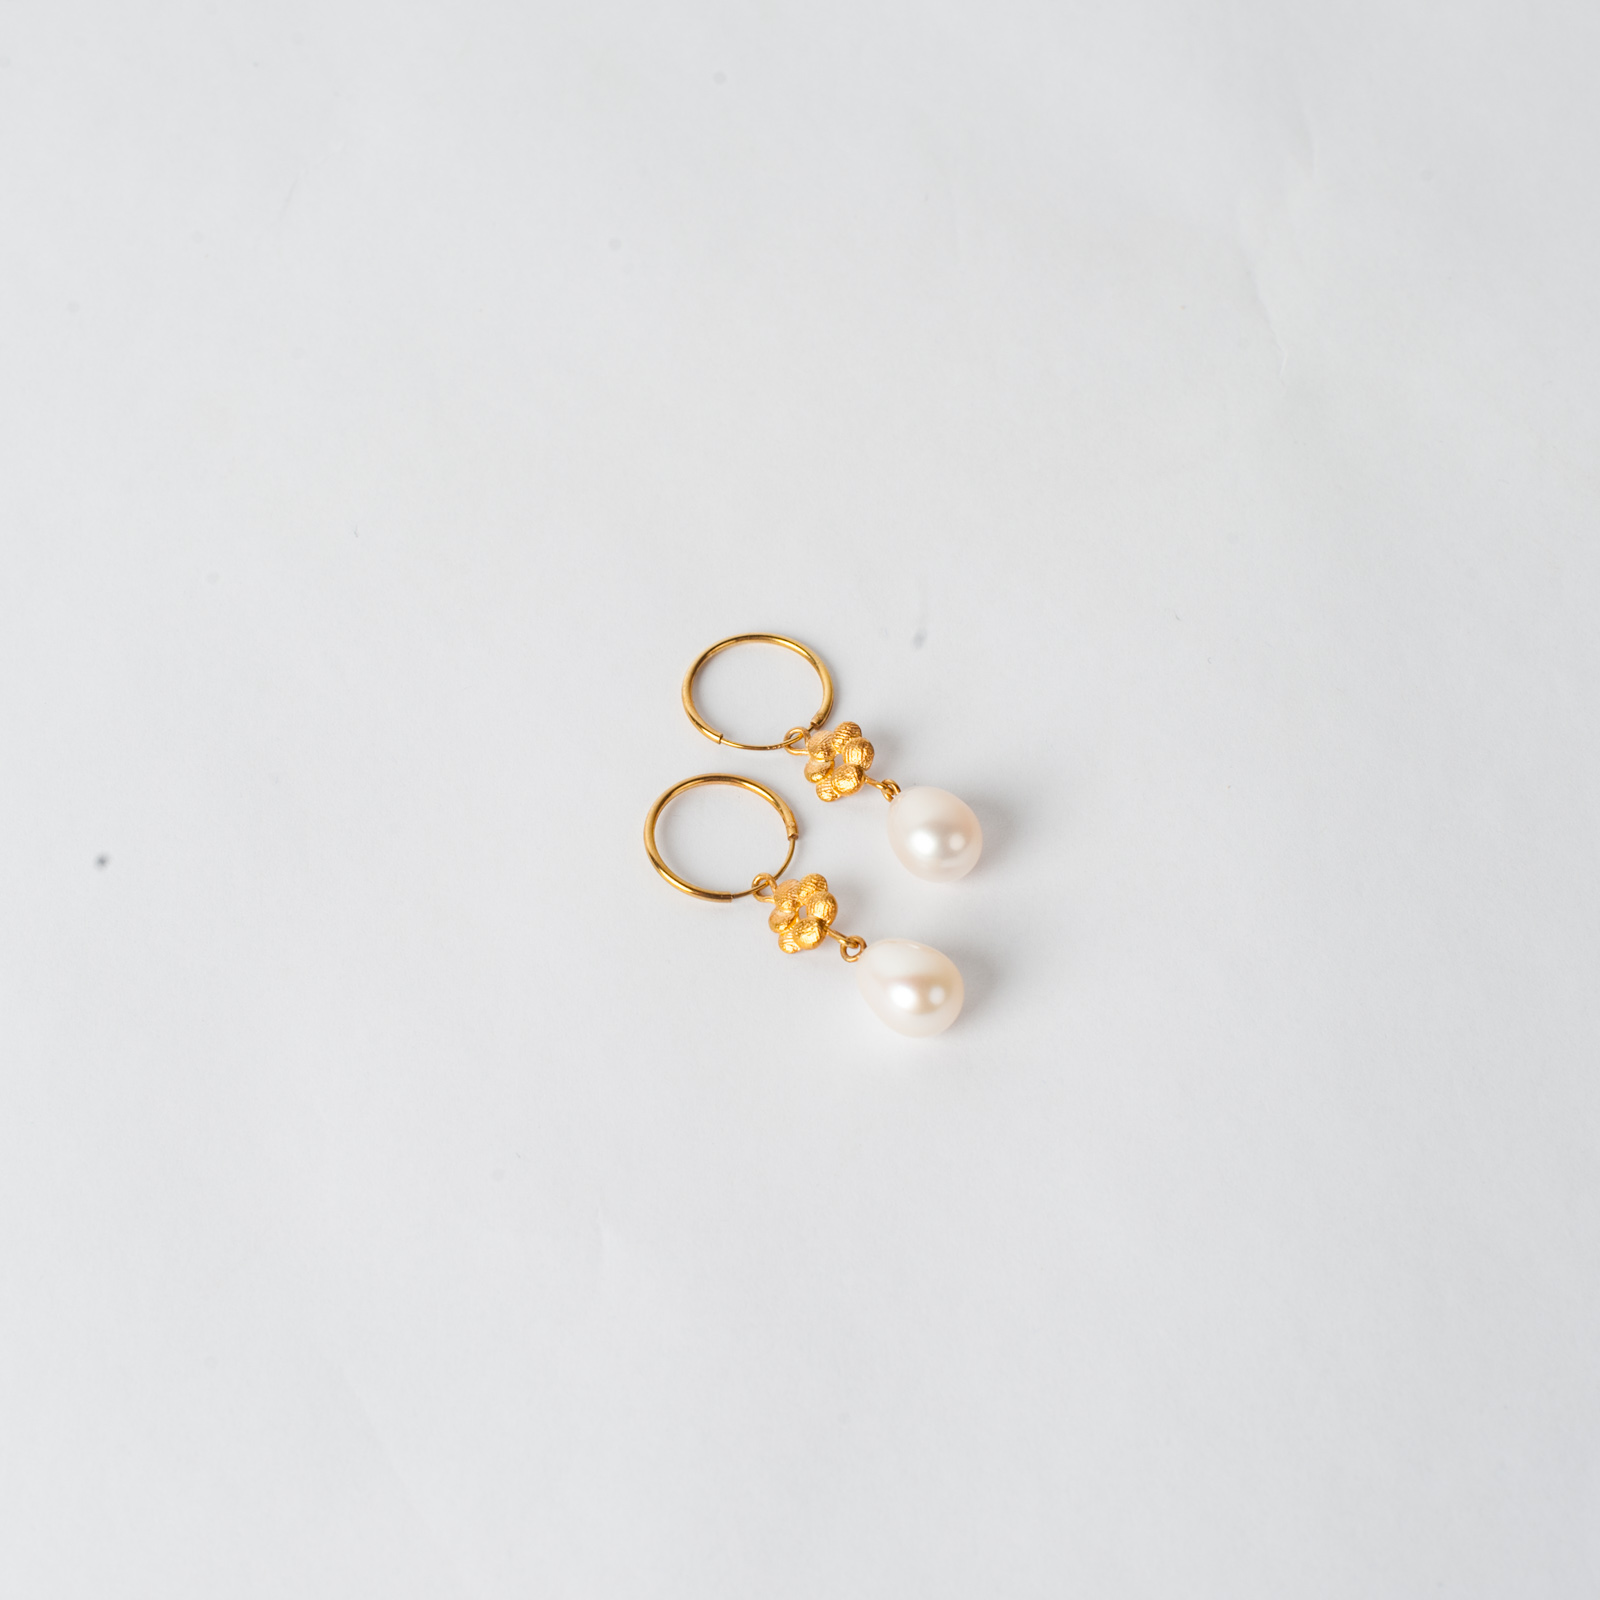 Precious Bloom Earrings In Gold Plated Sterling Silver With Freshwater Pearl By Yasmin Hackett 02